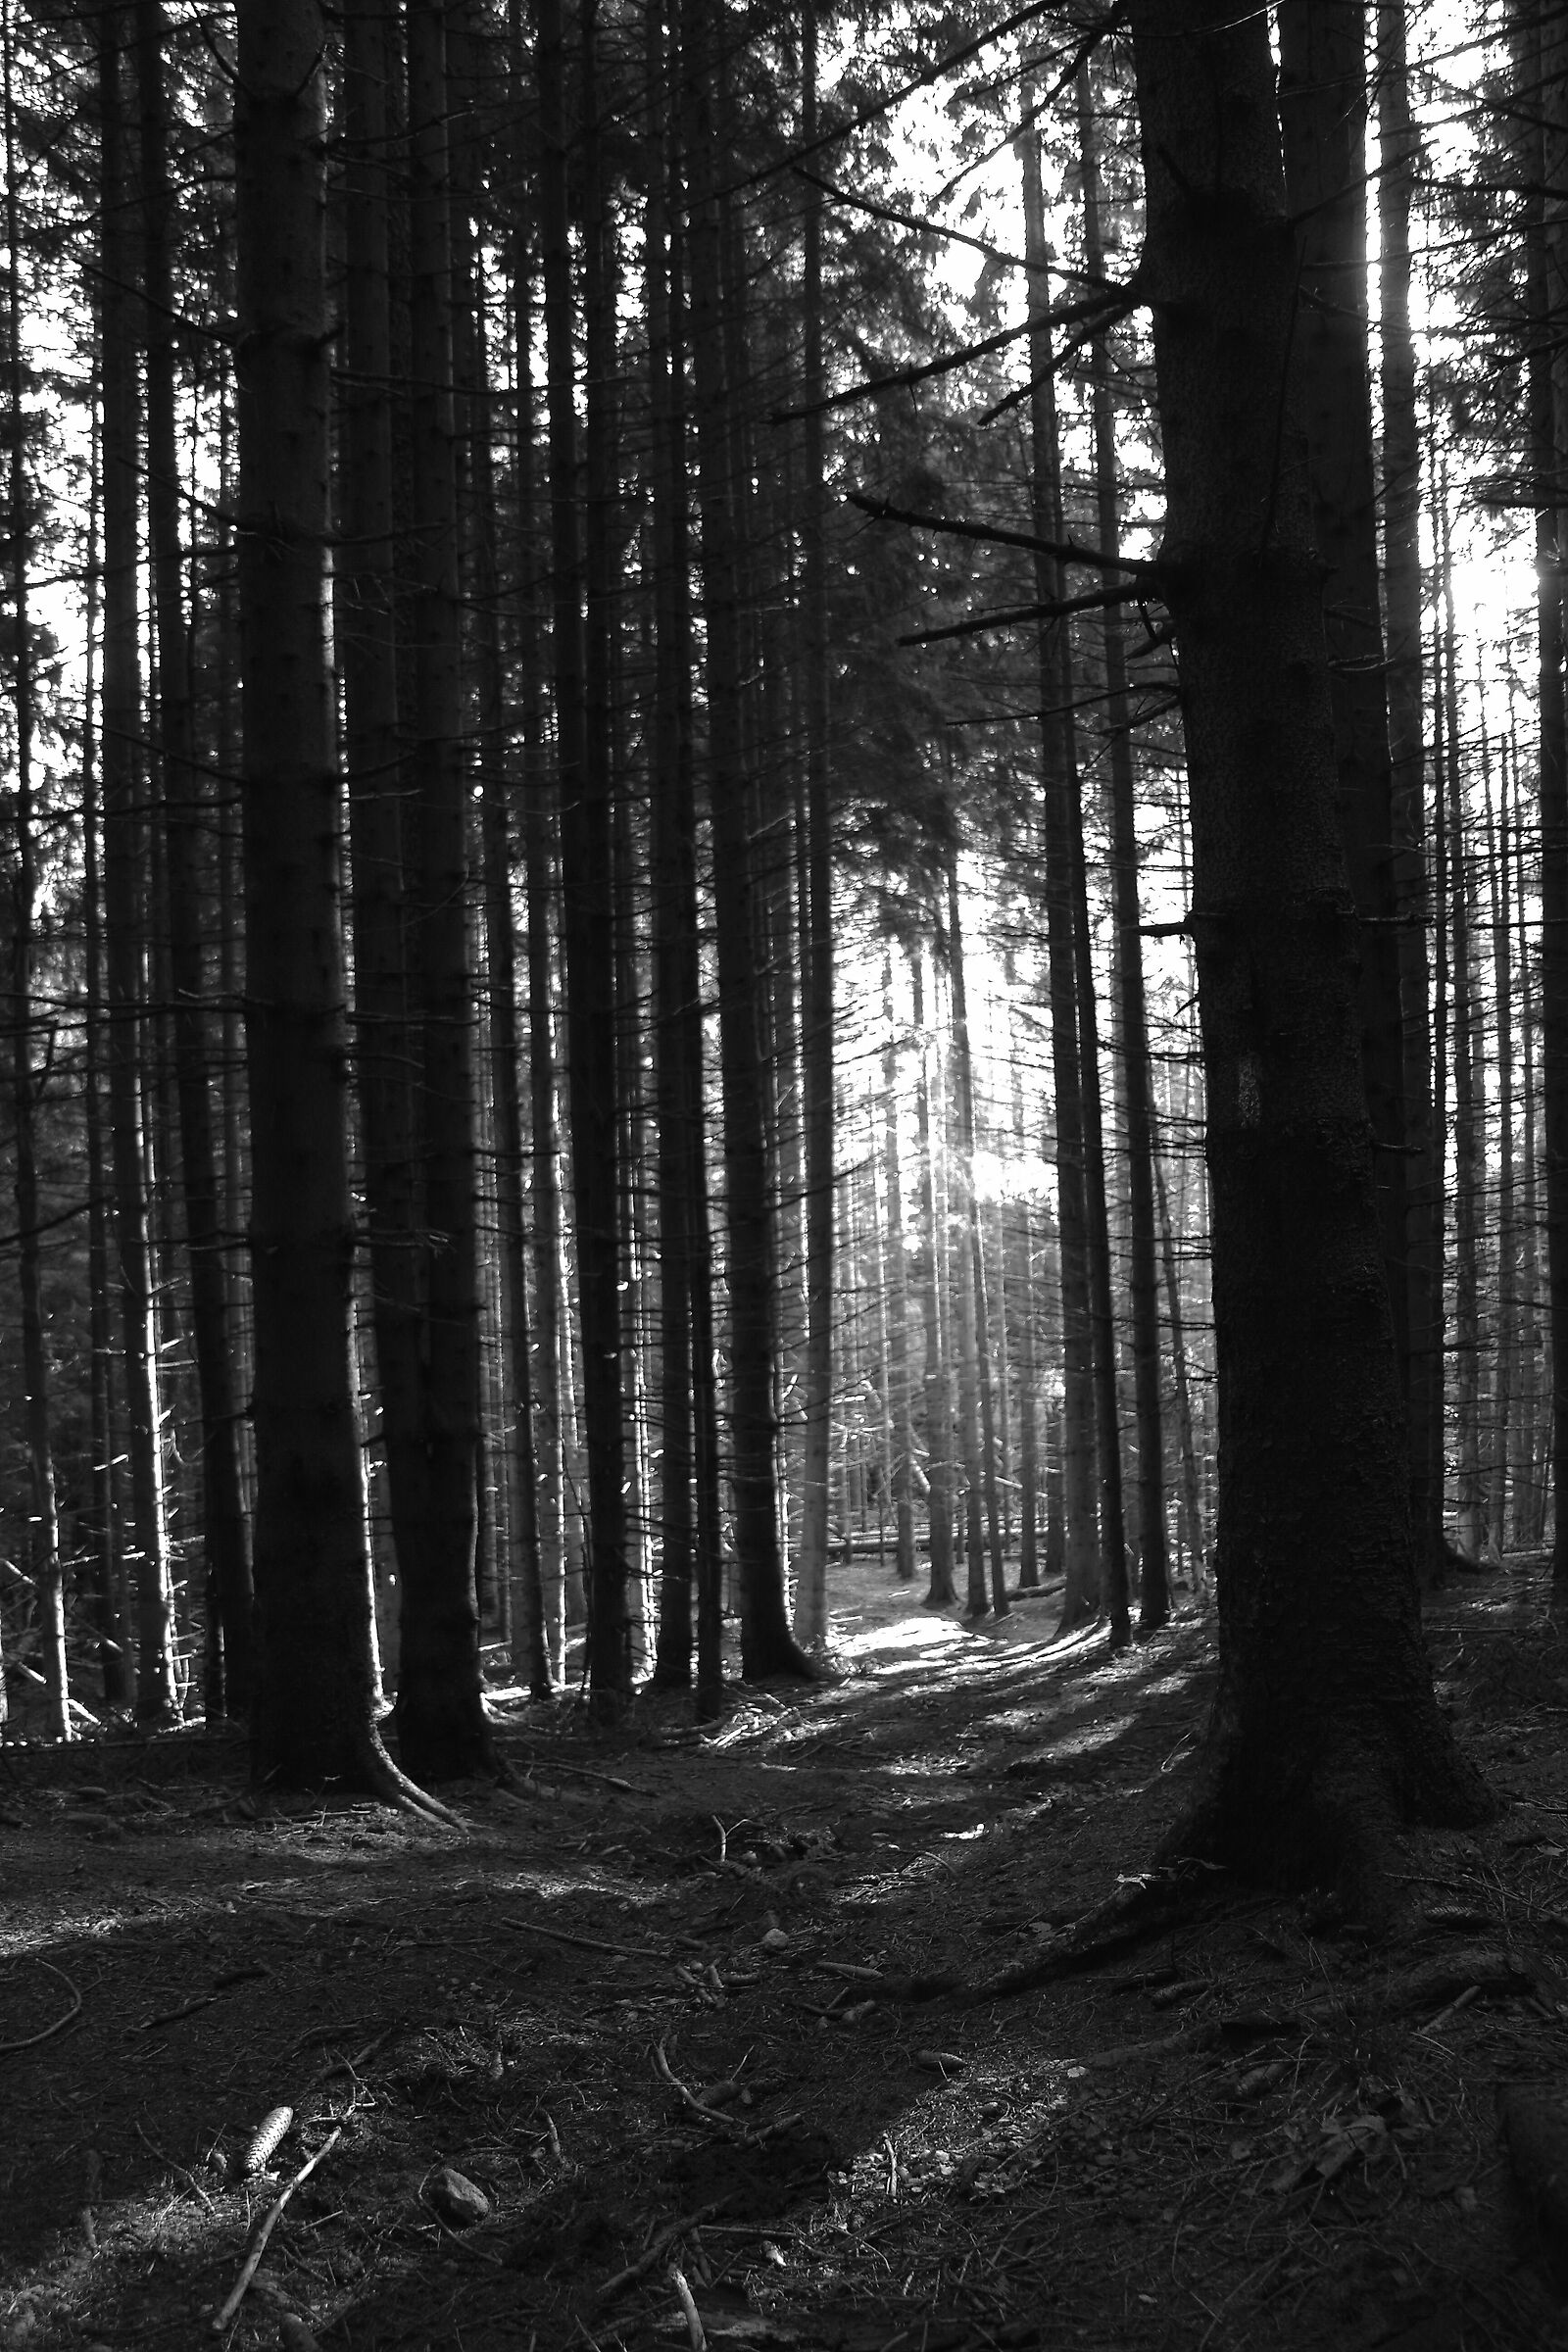 Inside the woods....